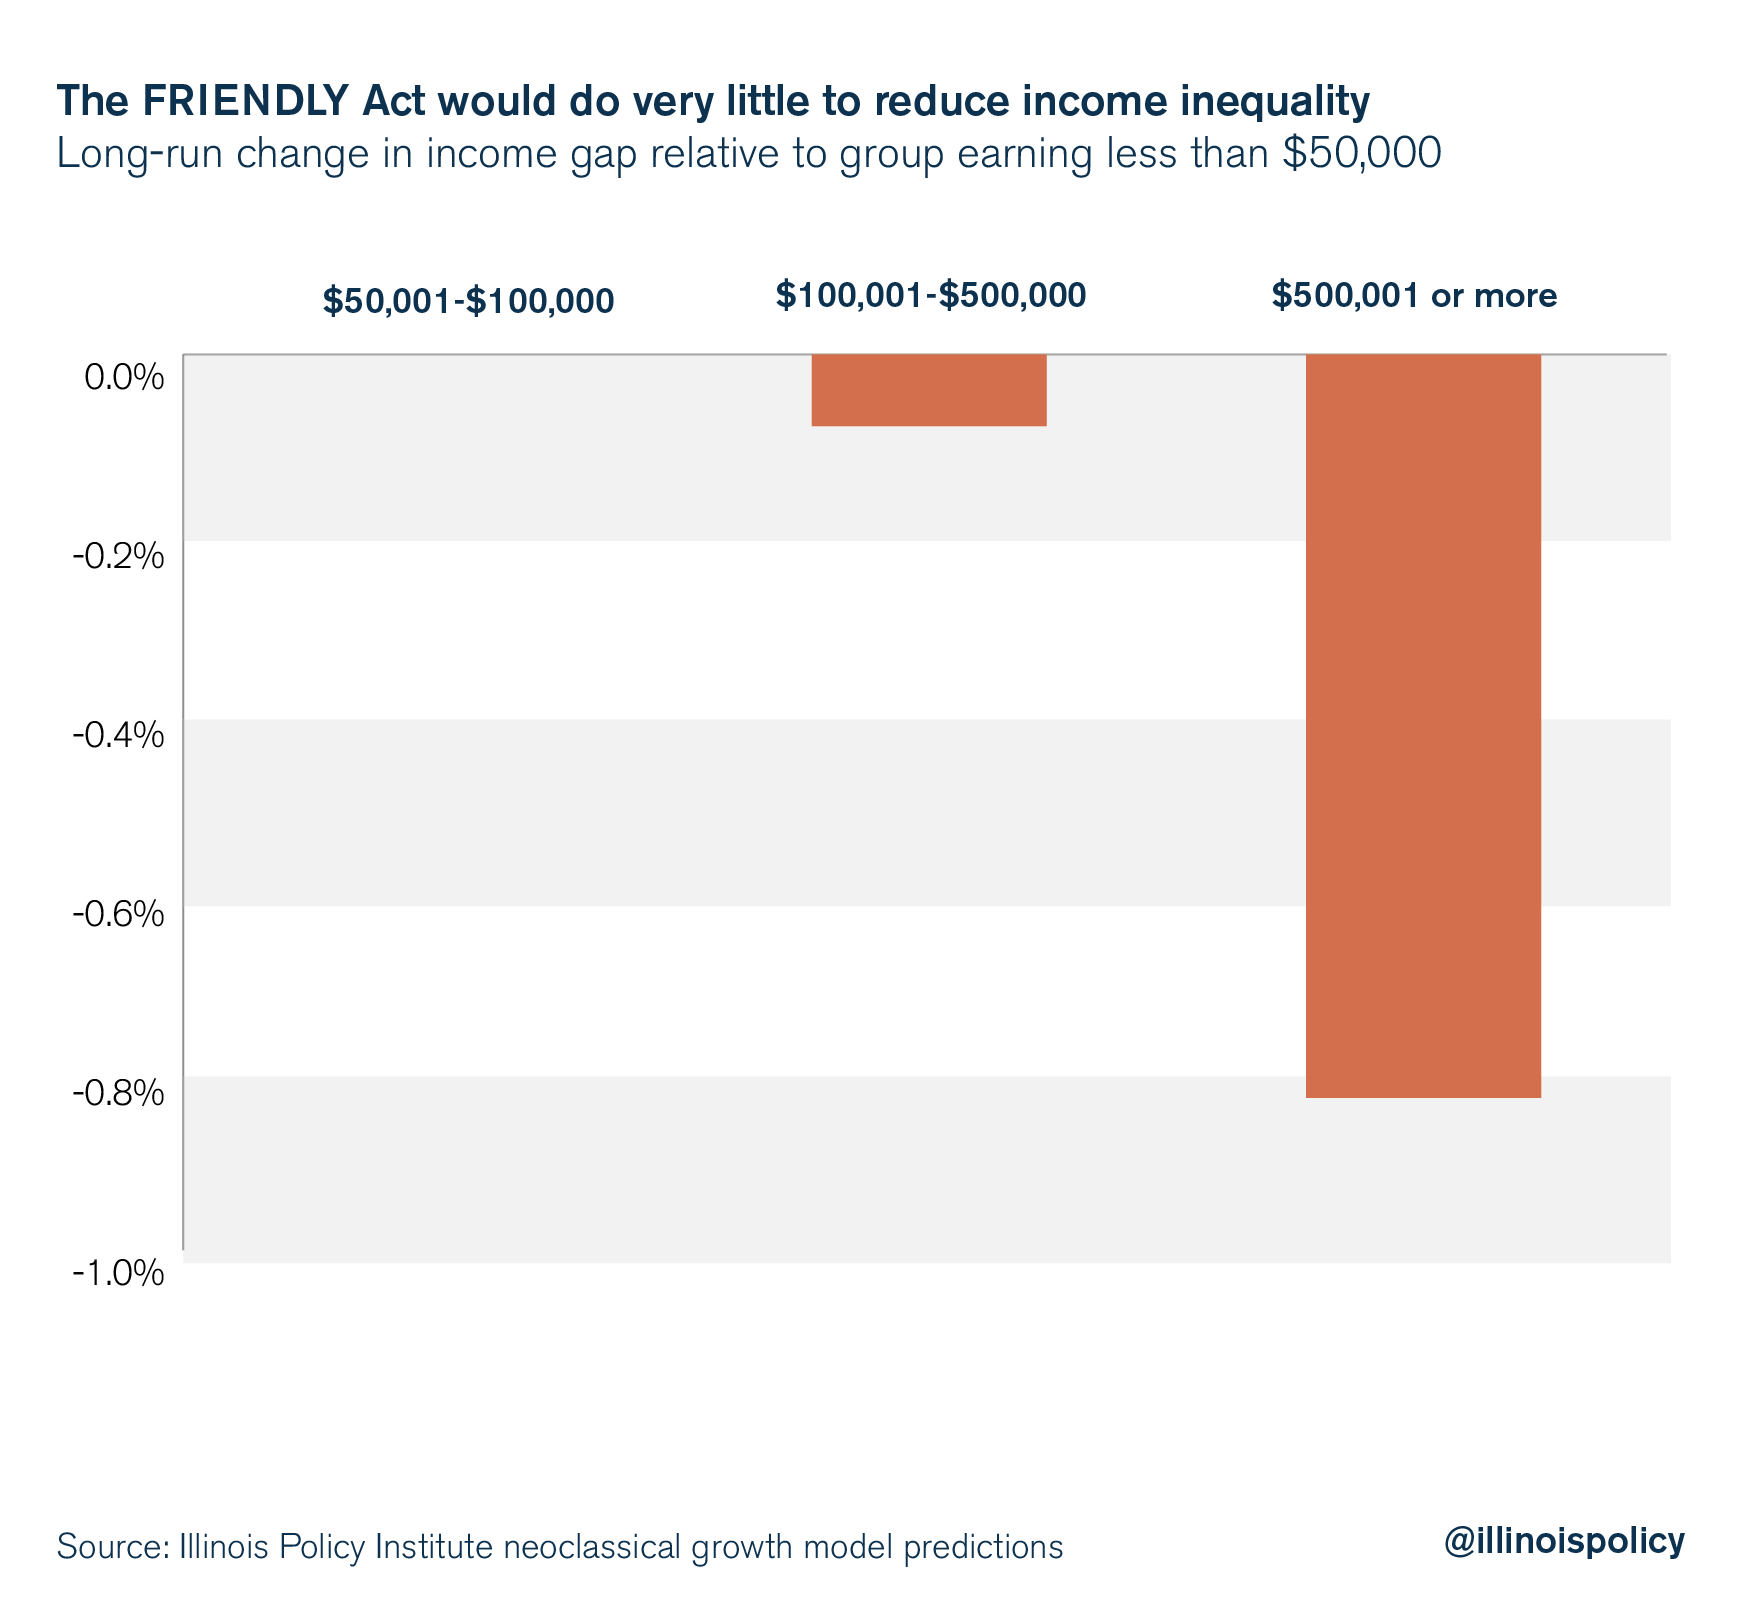 The FRIENDLY Act would do very little to reduce income inequality